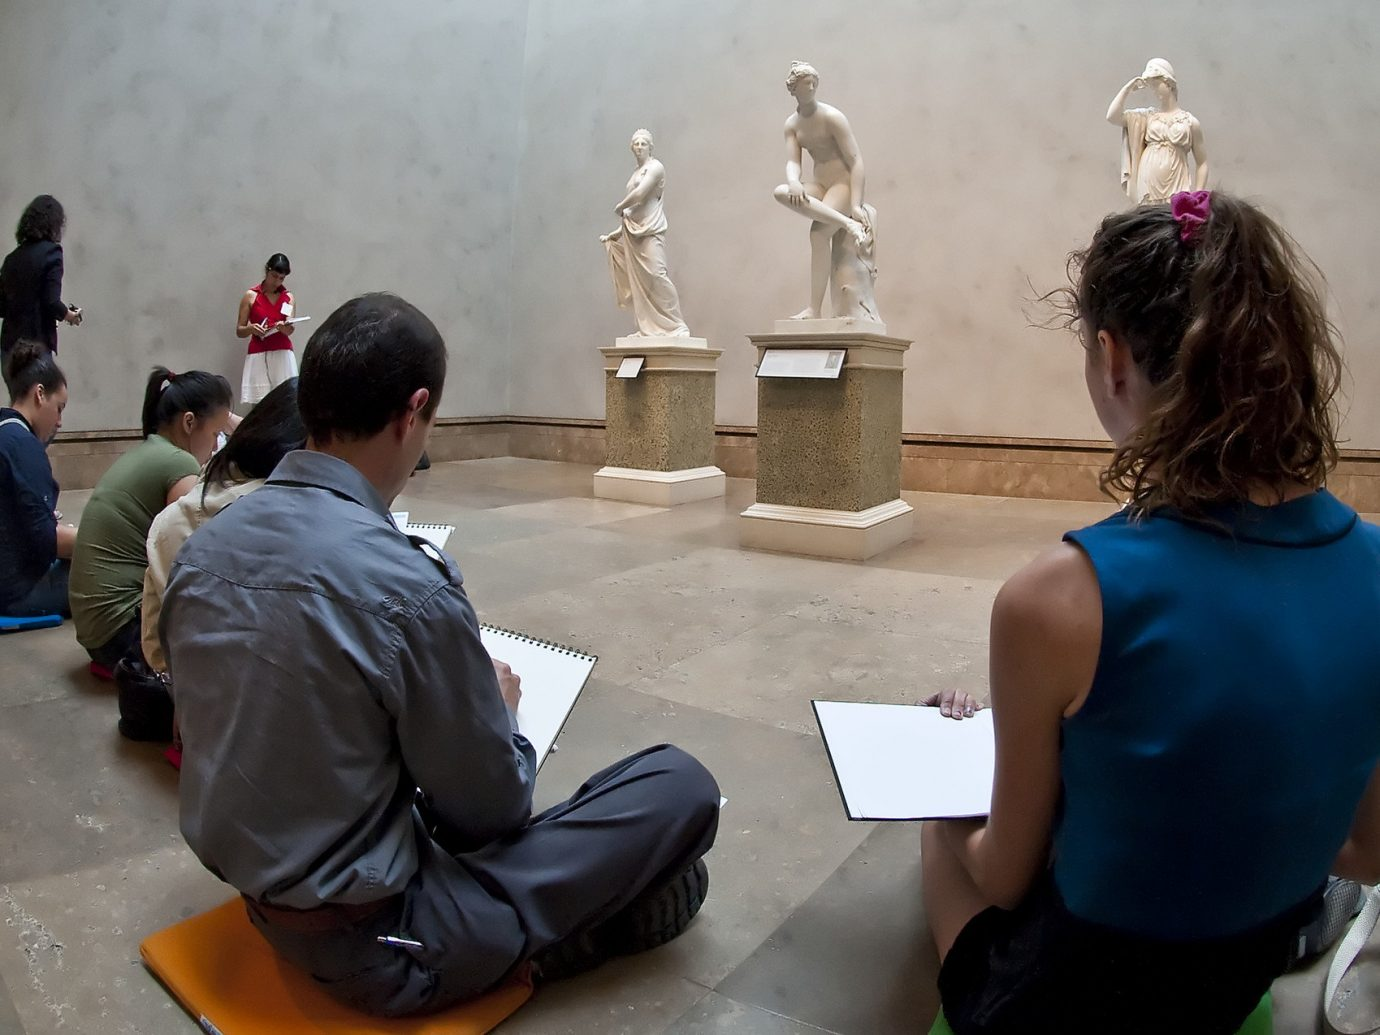 activities art Budget class drawing learning Museums painting paintings people sculpture person photograph social group performance art temple